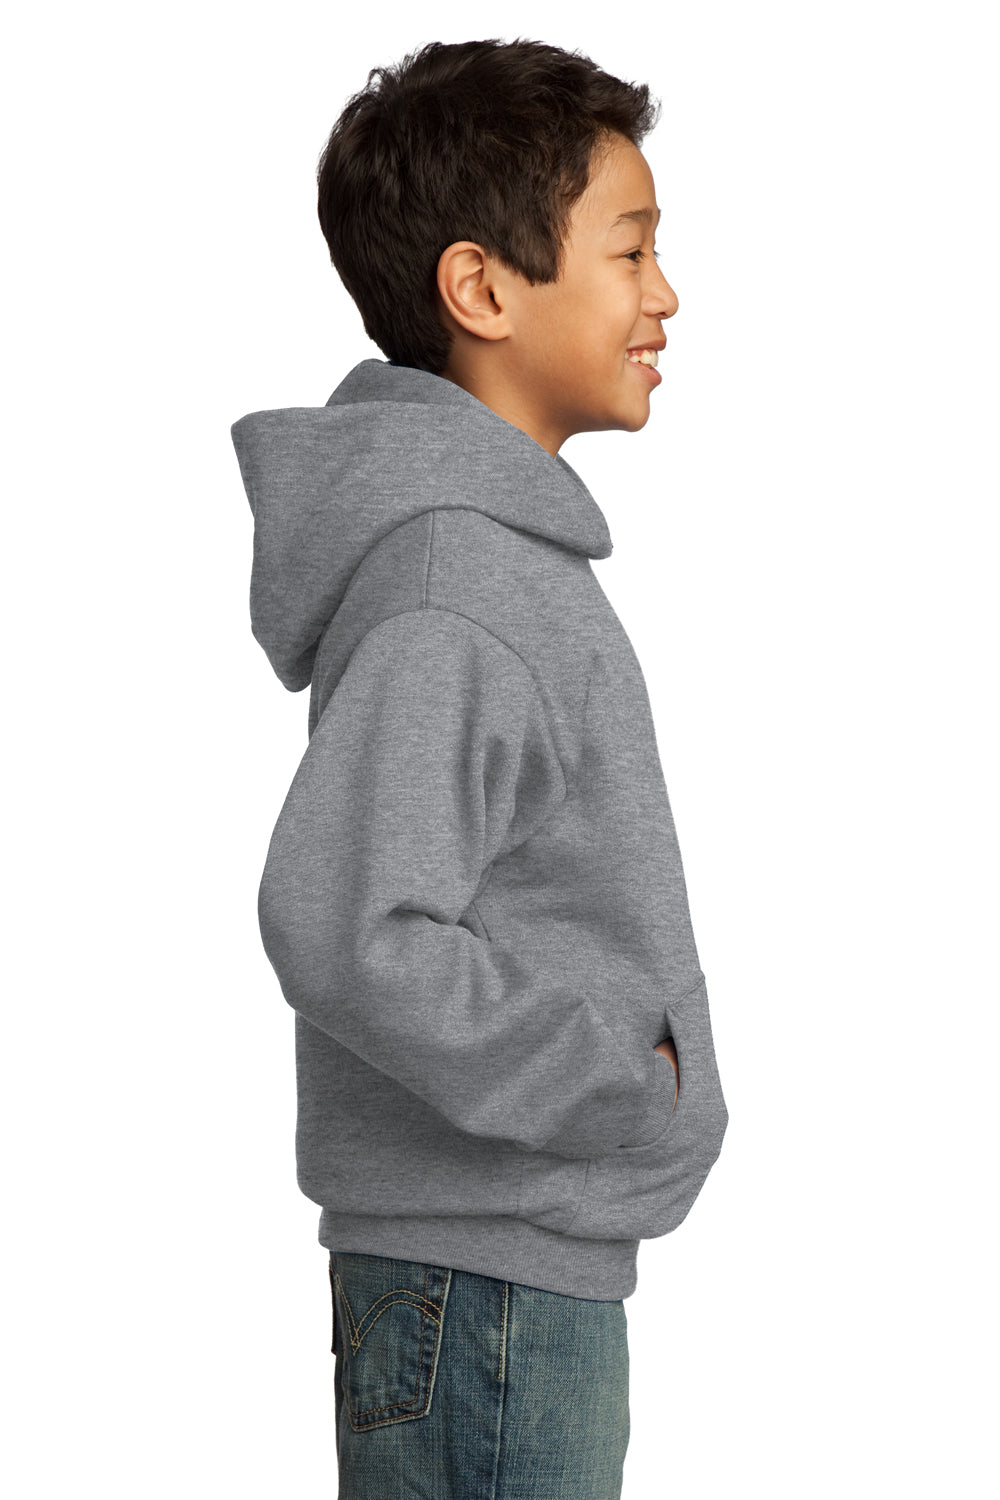 Port & Company PC90YH Youth Core Fleece Hooded Sweatshirt Hoodie Heather Grey Side